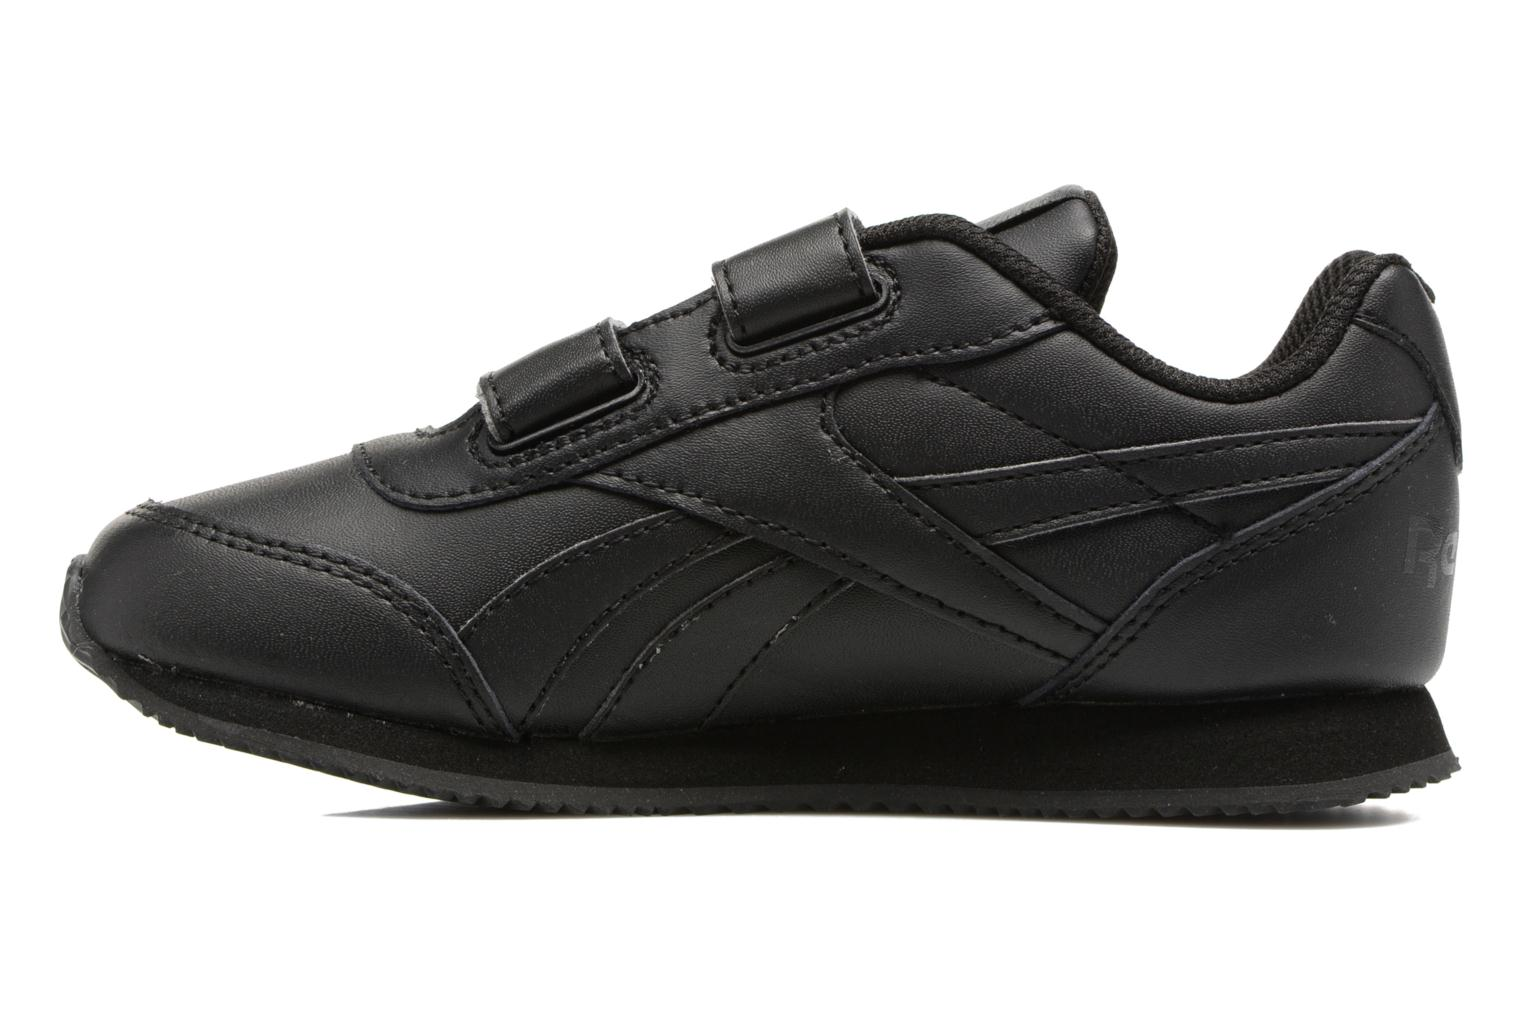 Reebok Royal Cljog 2 2V Black